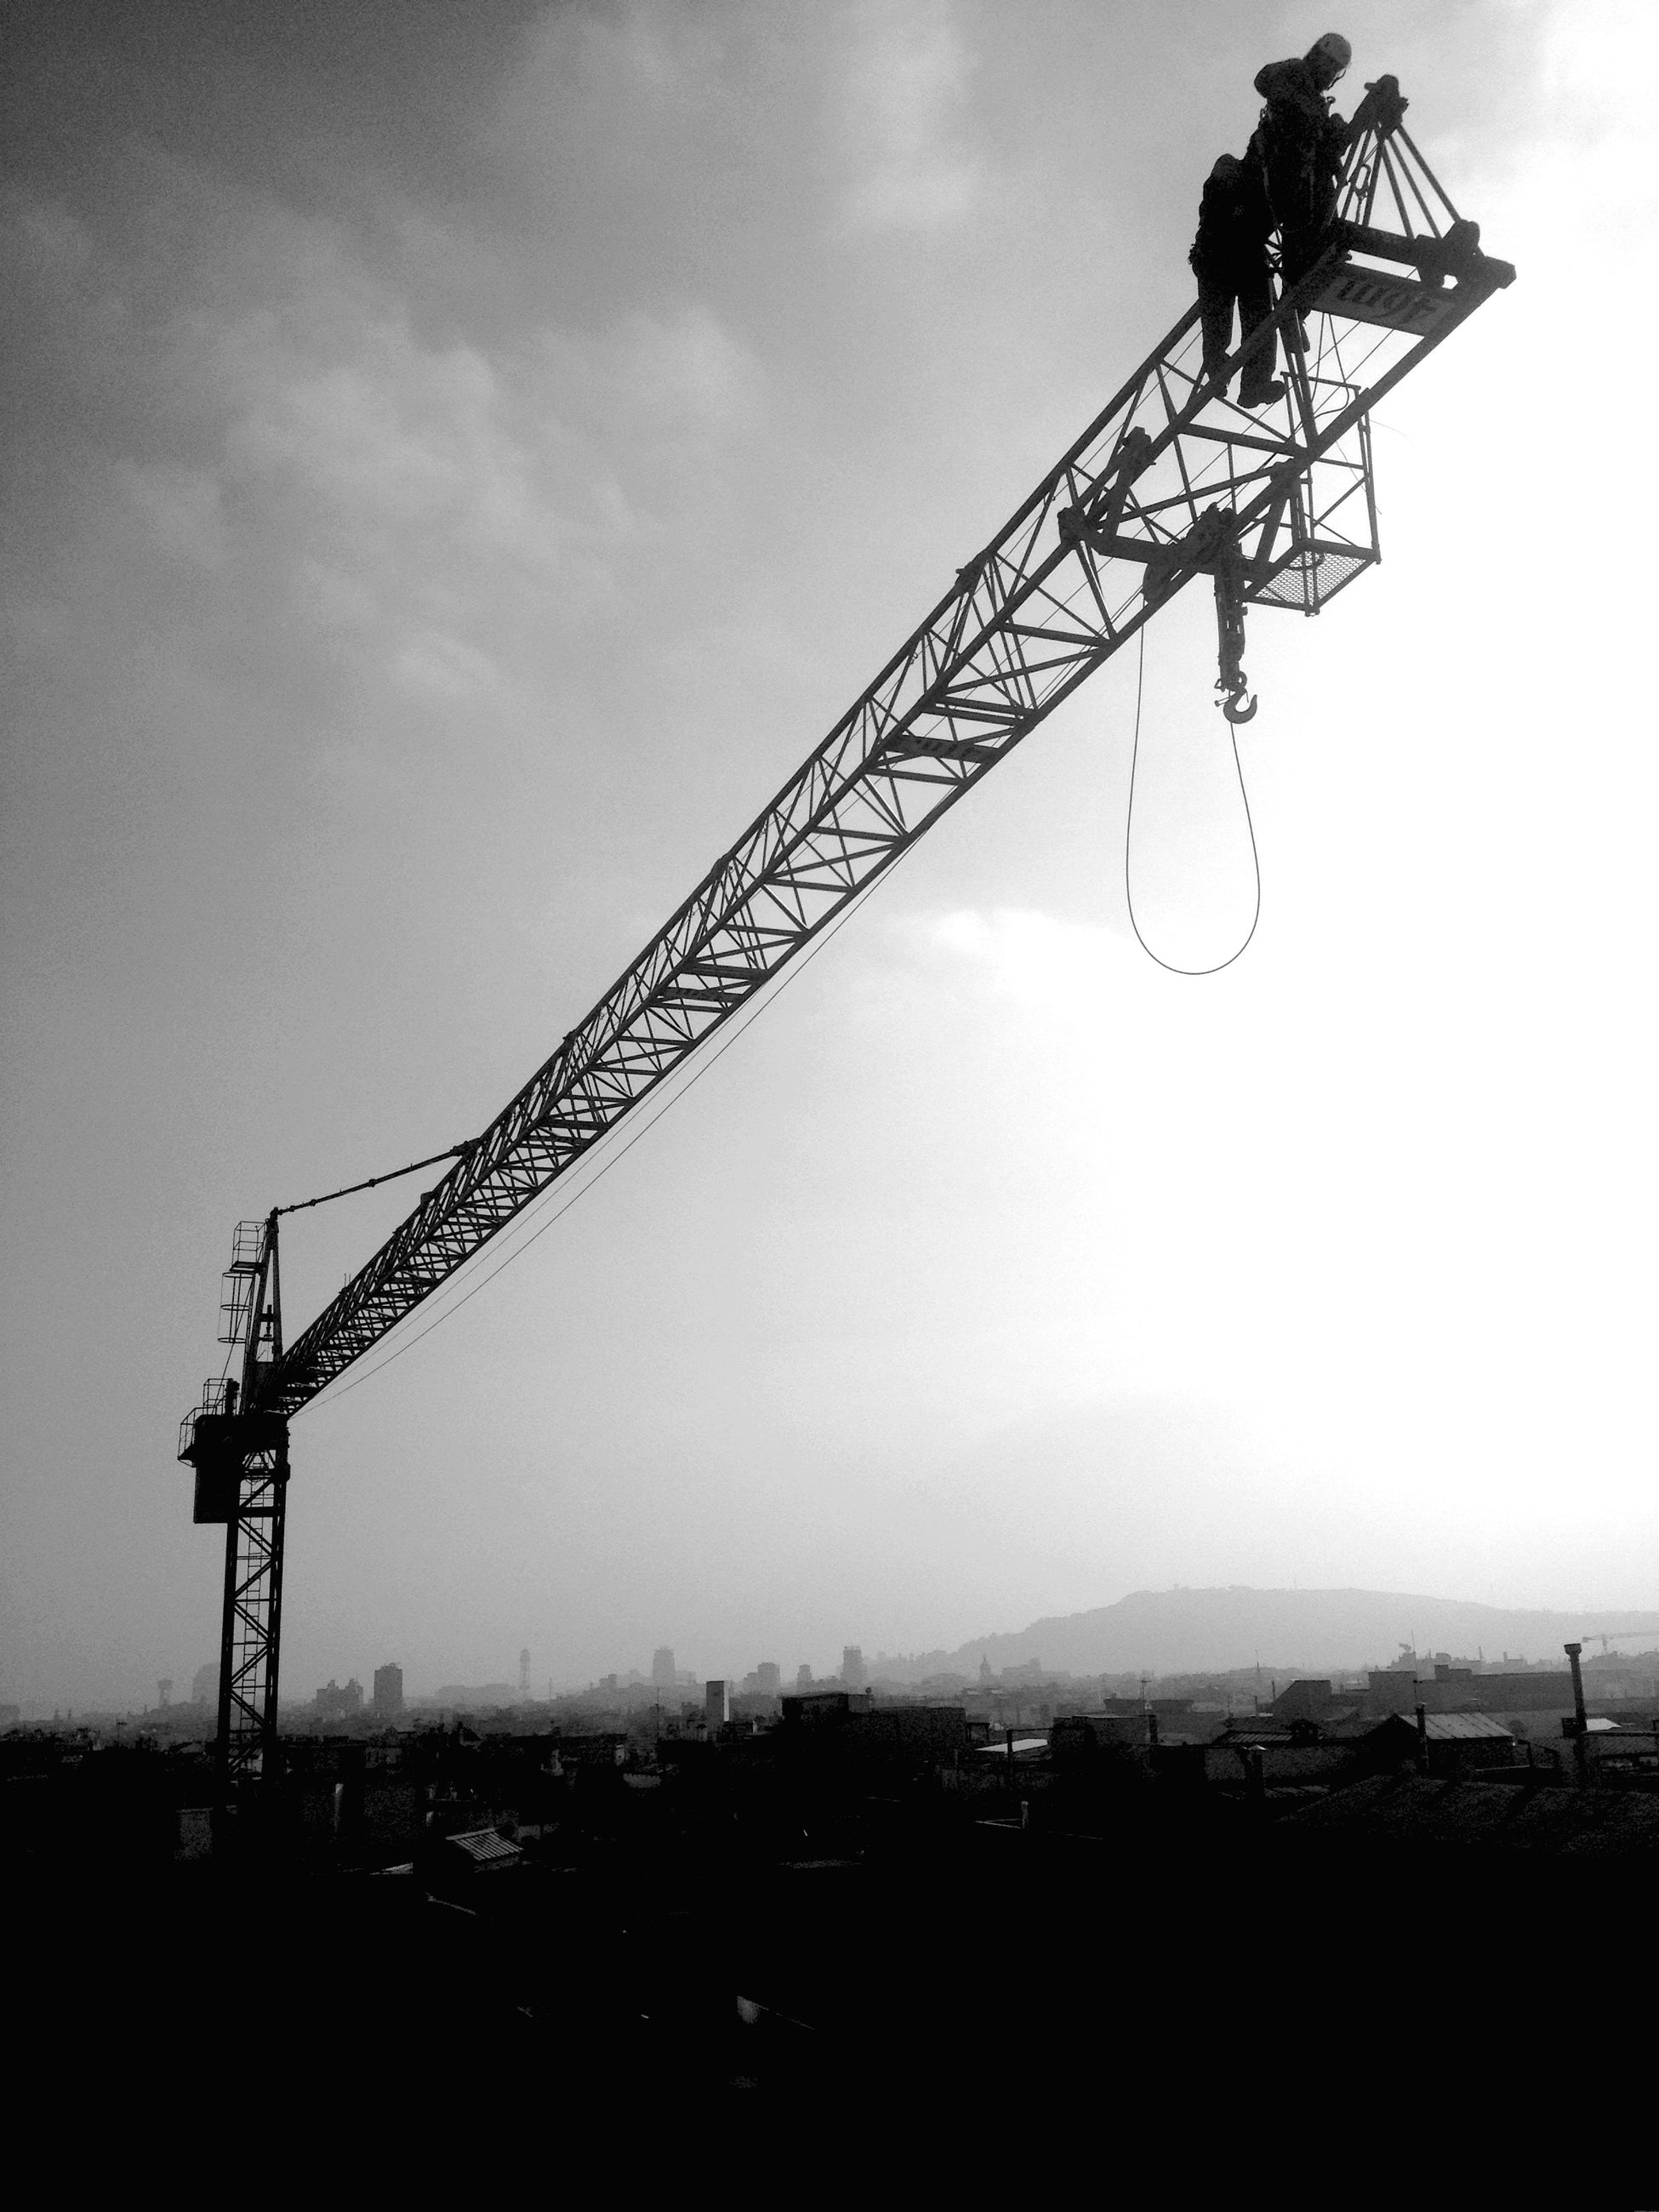 crane - construction machinery, sky, silhouette, construction site, low angle view, development, metal, crane, dusk, sunset, construction, technology, outdoors, construction industry, no people, nature, connection, cloud - sky, electricity, fuel and power generation